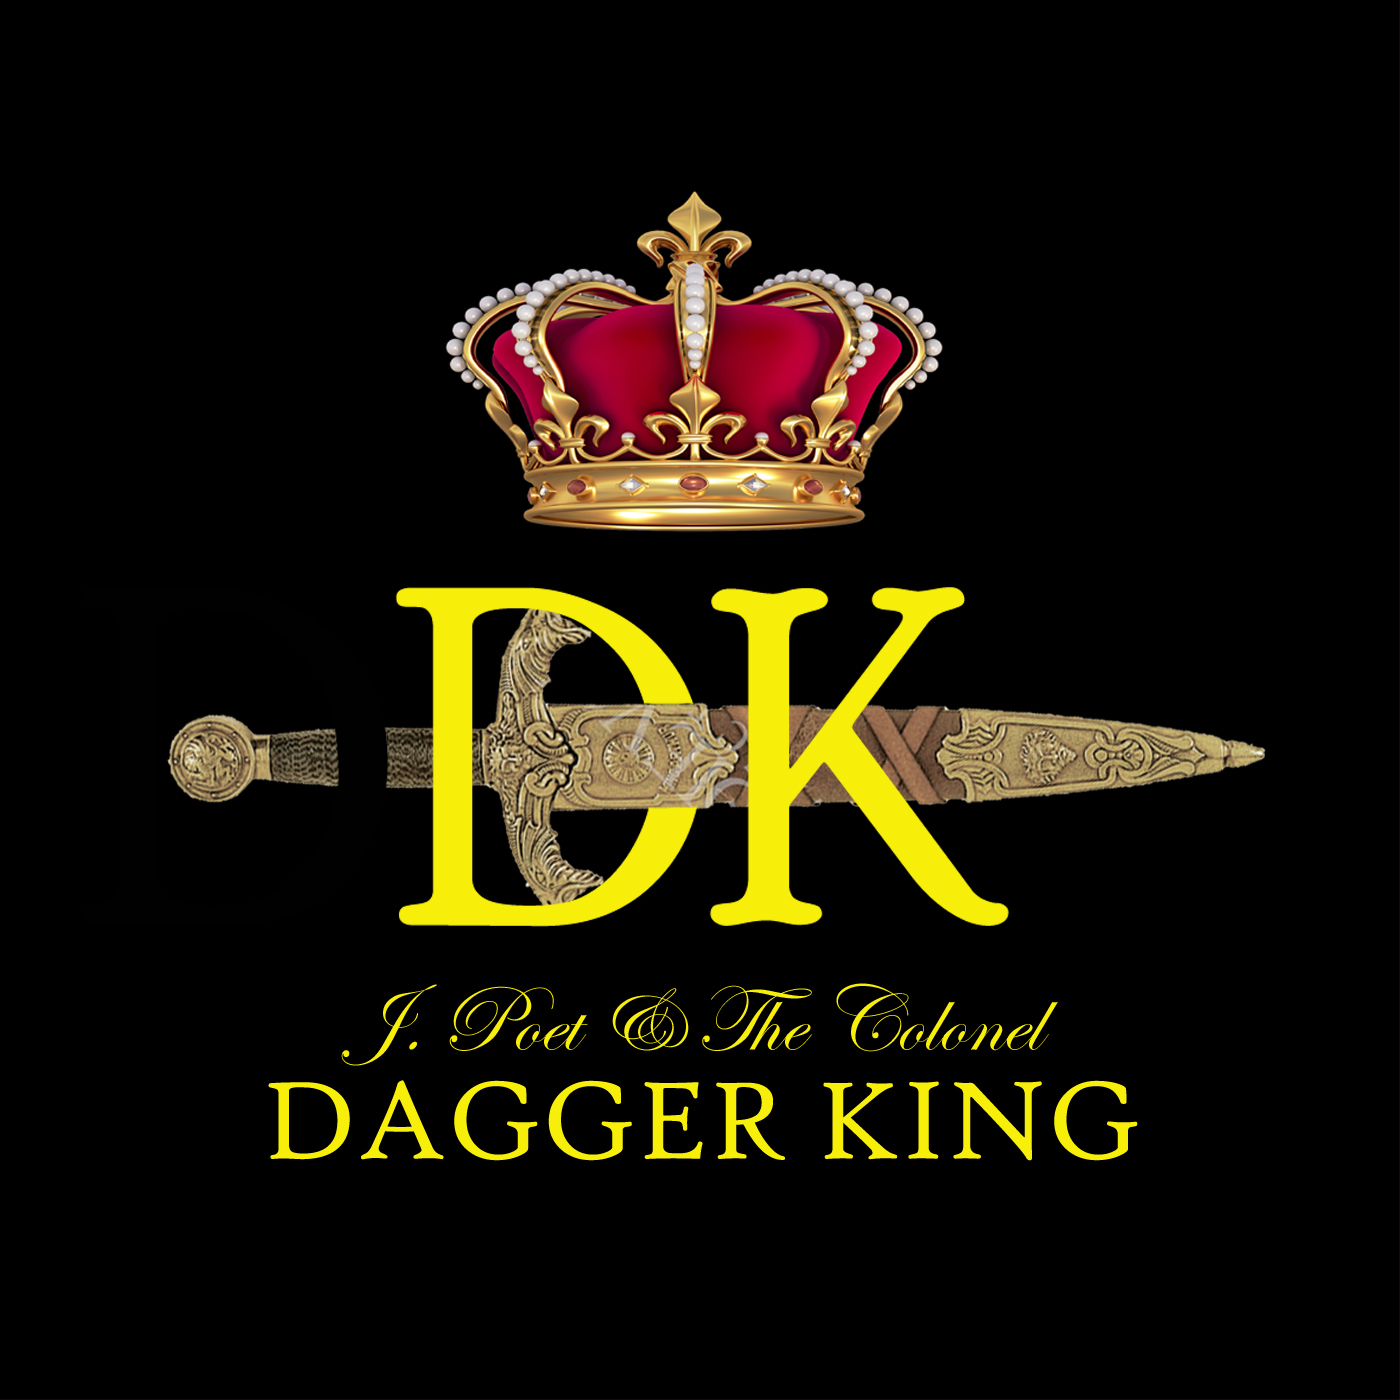 J.Poet & The Colonel - 'Dagger King' Cover Art